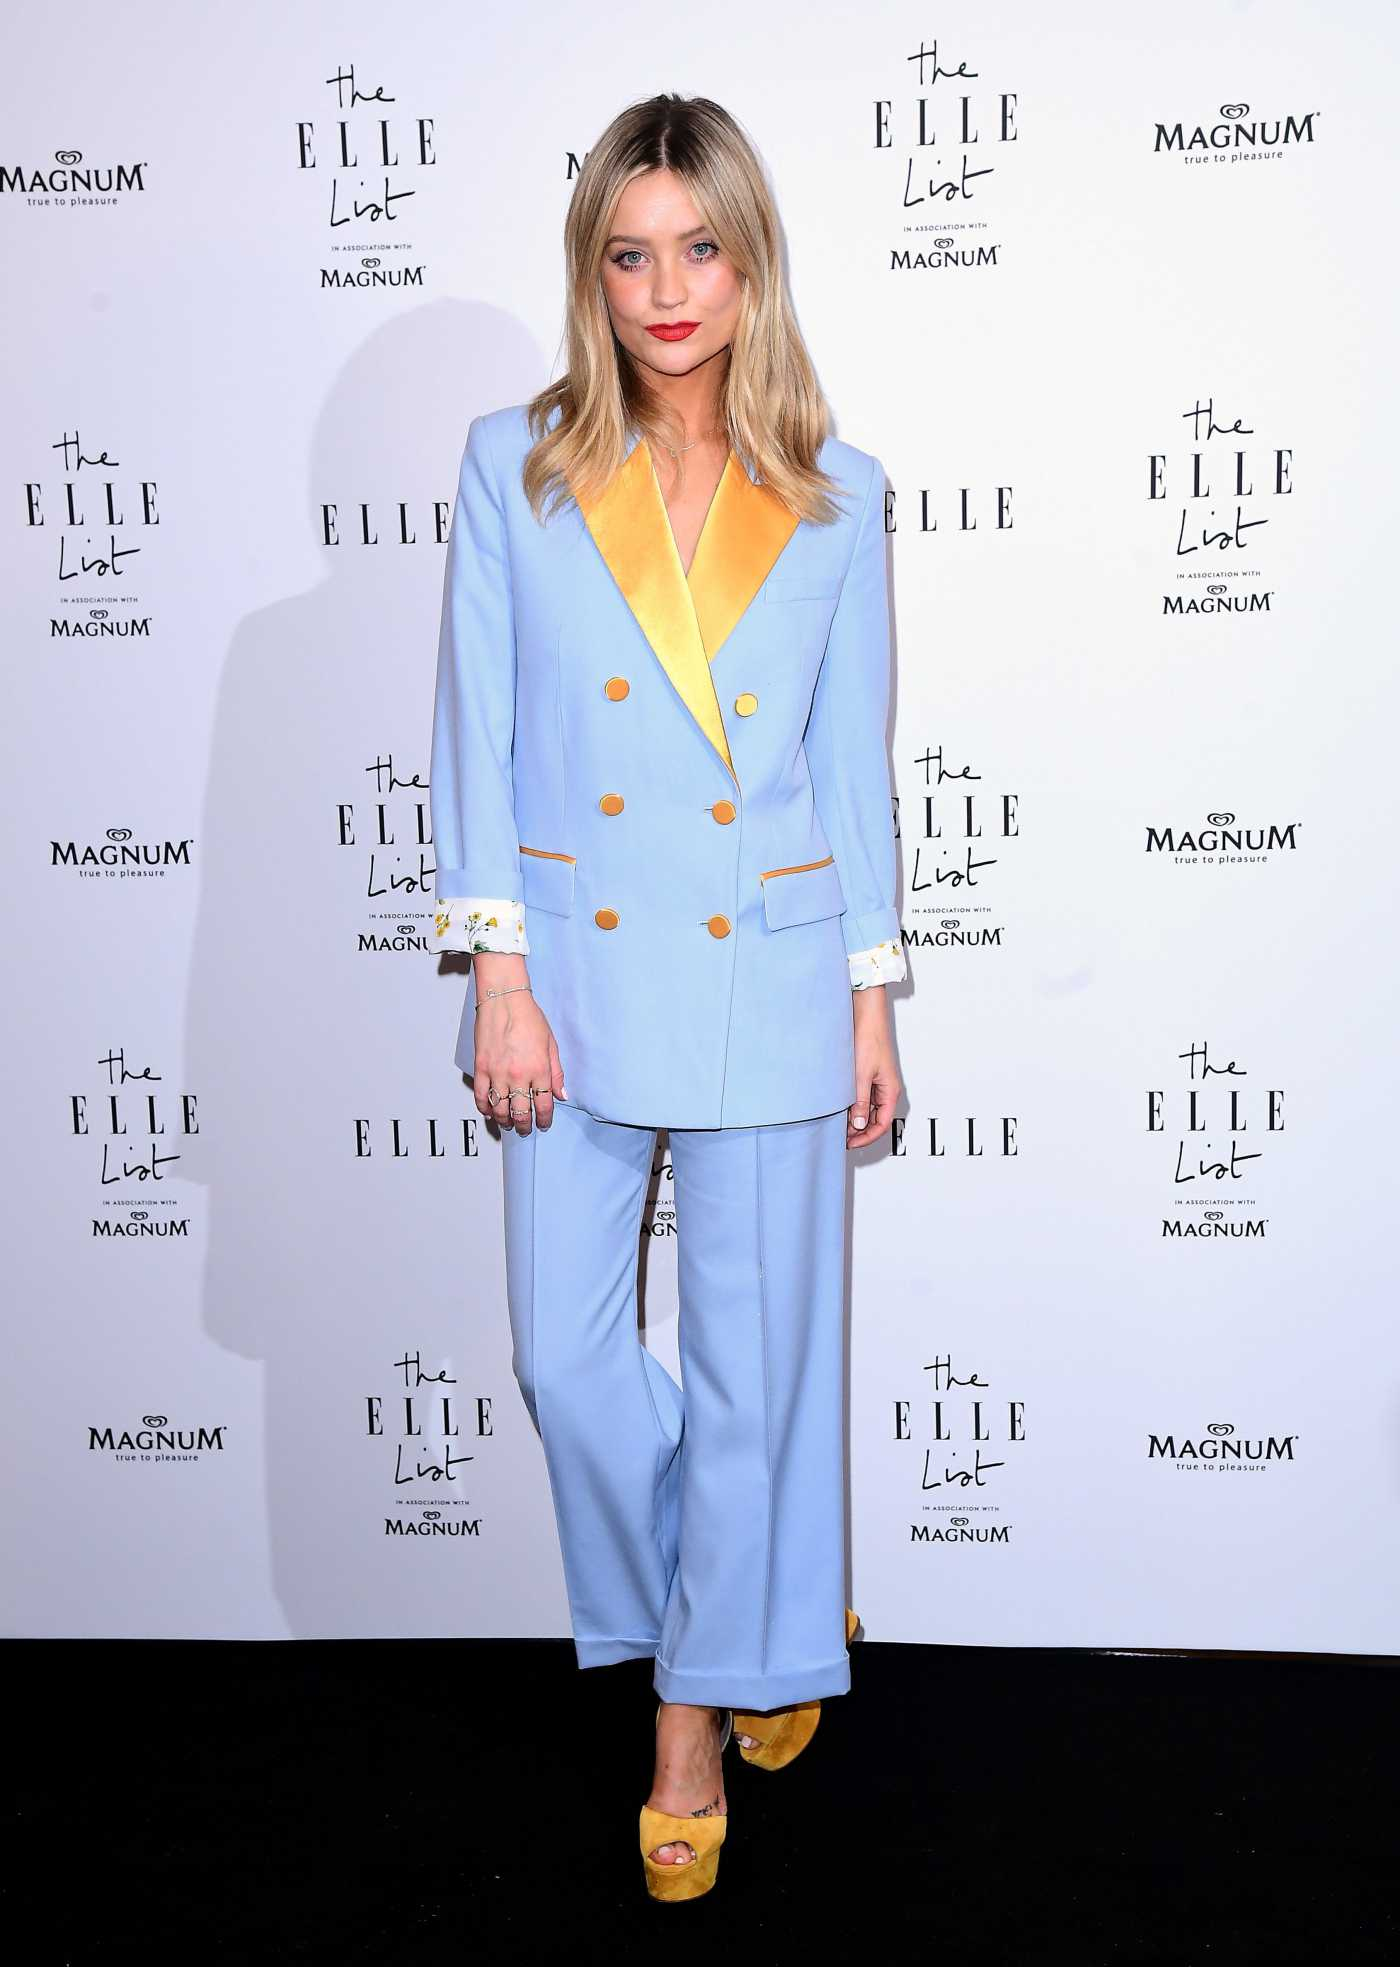 Laura Whitmore Celebrates the ELLE List in London 06/19/2019